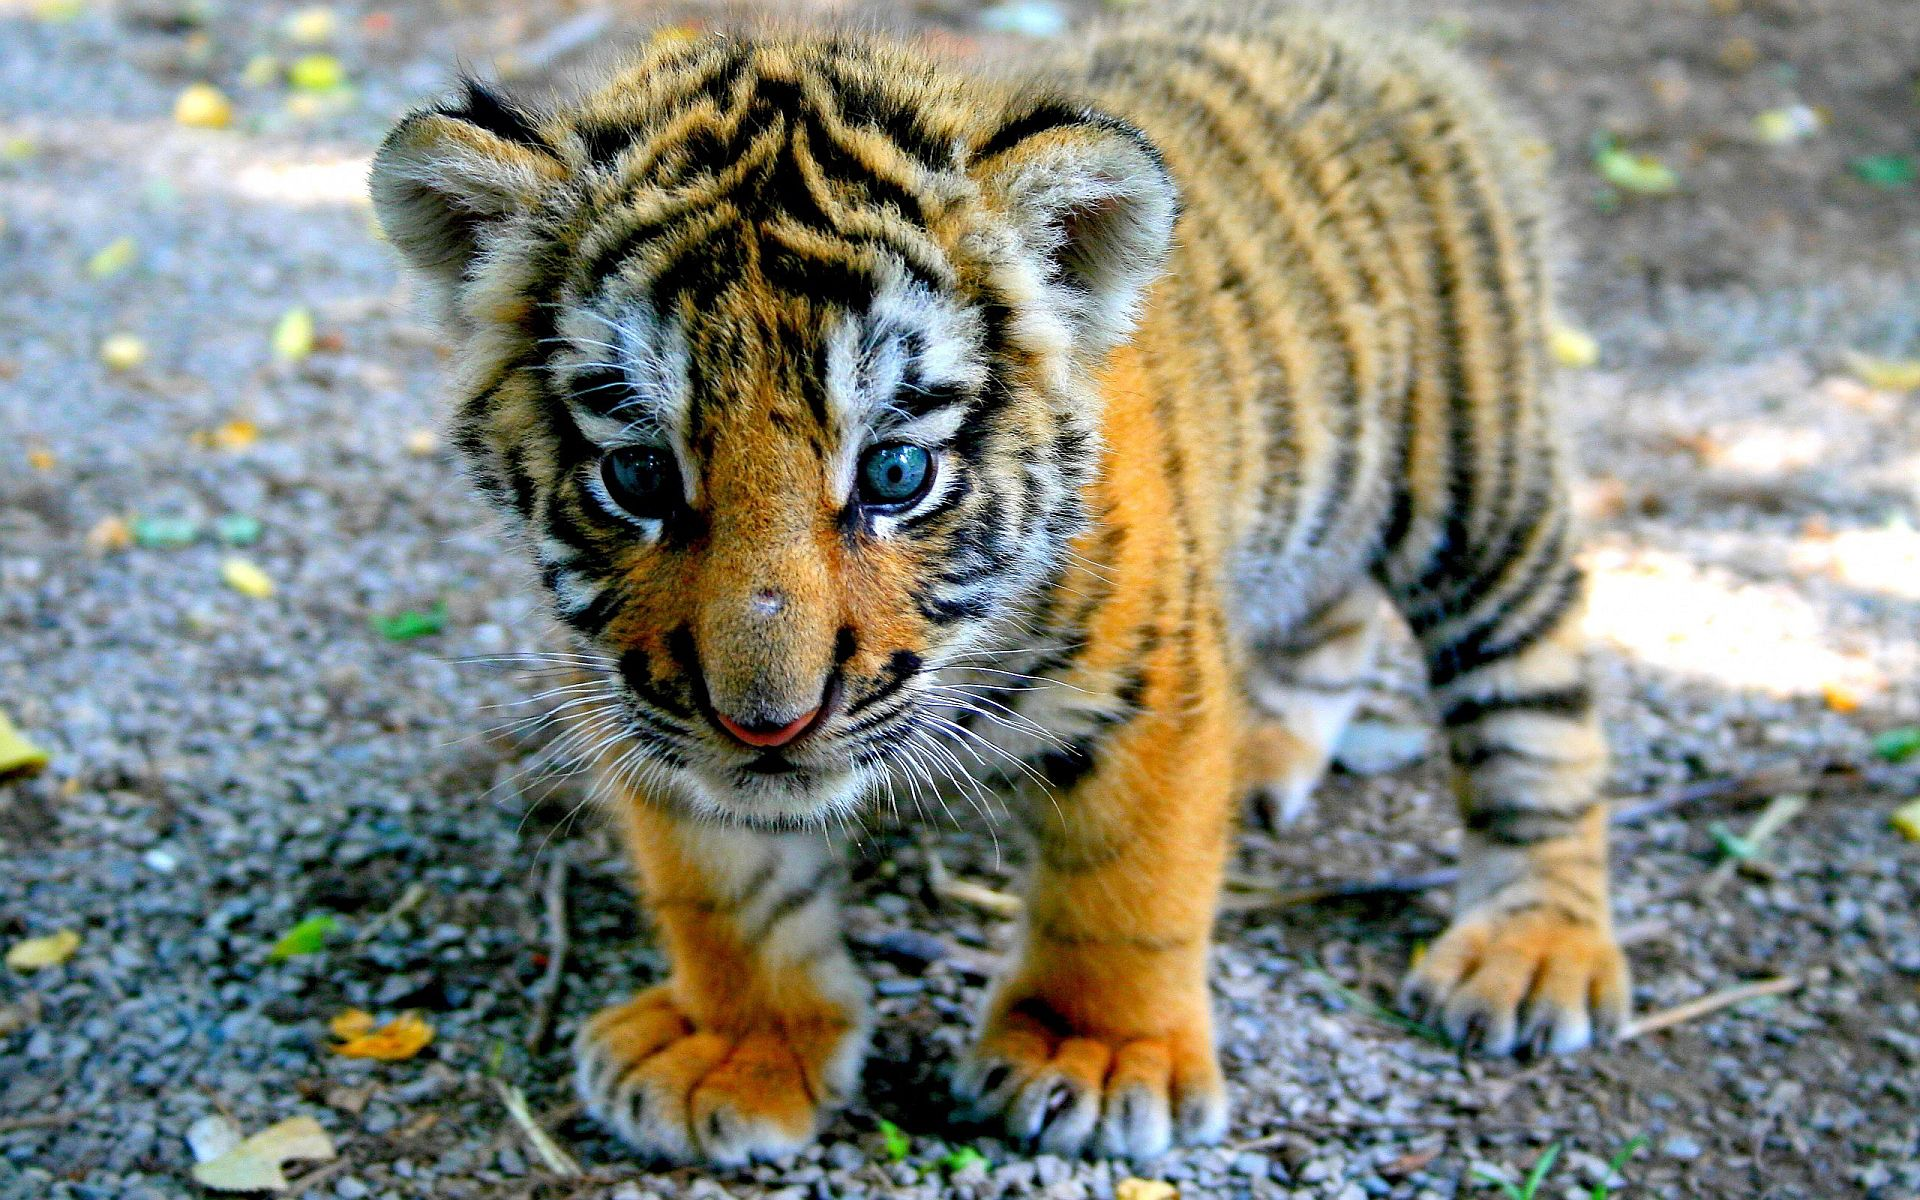 Baby Tiger Wallpapers Mobile Stuff To Buy Cute Animals Baby